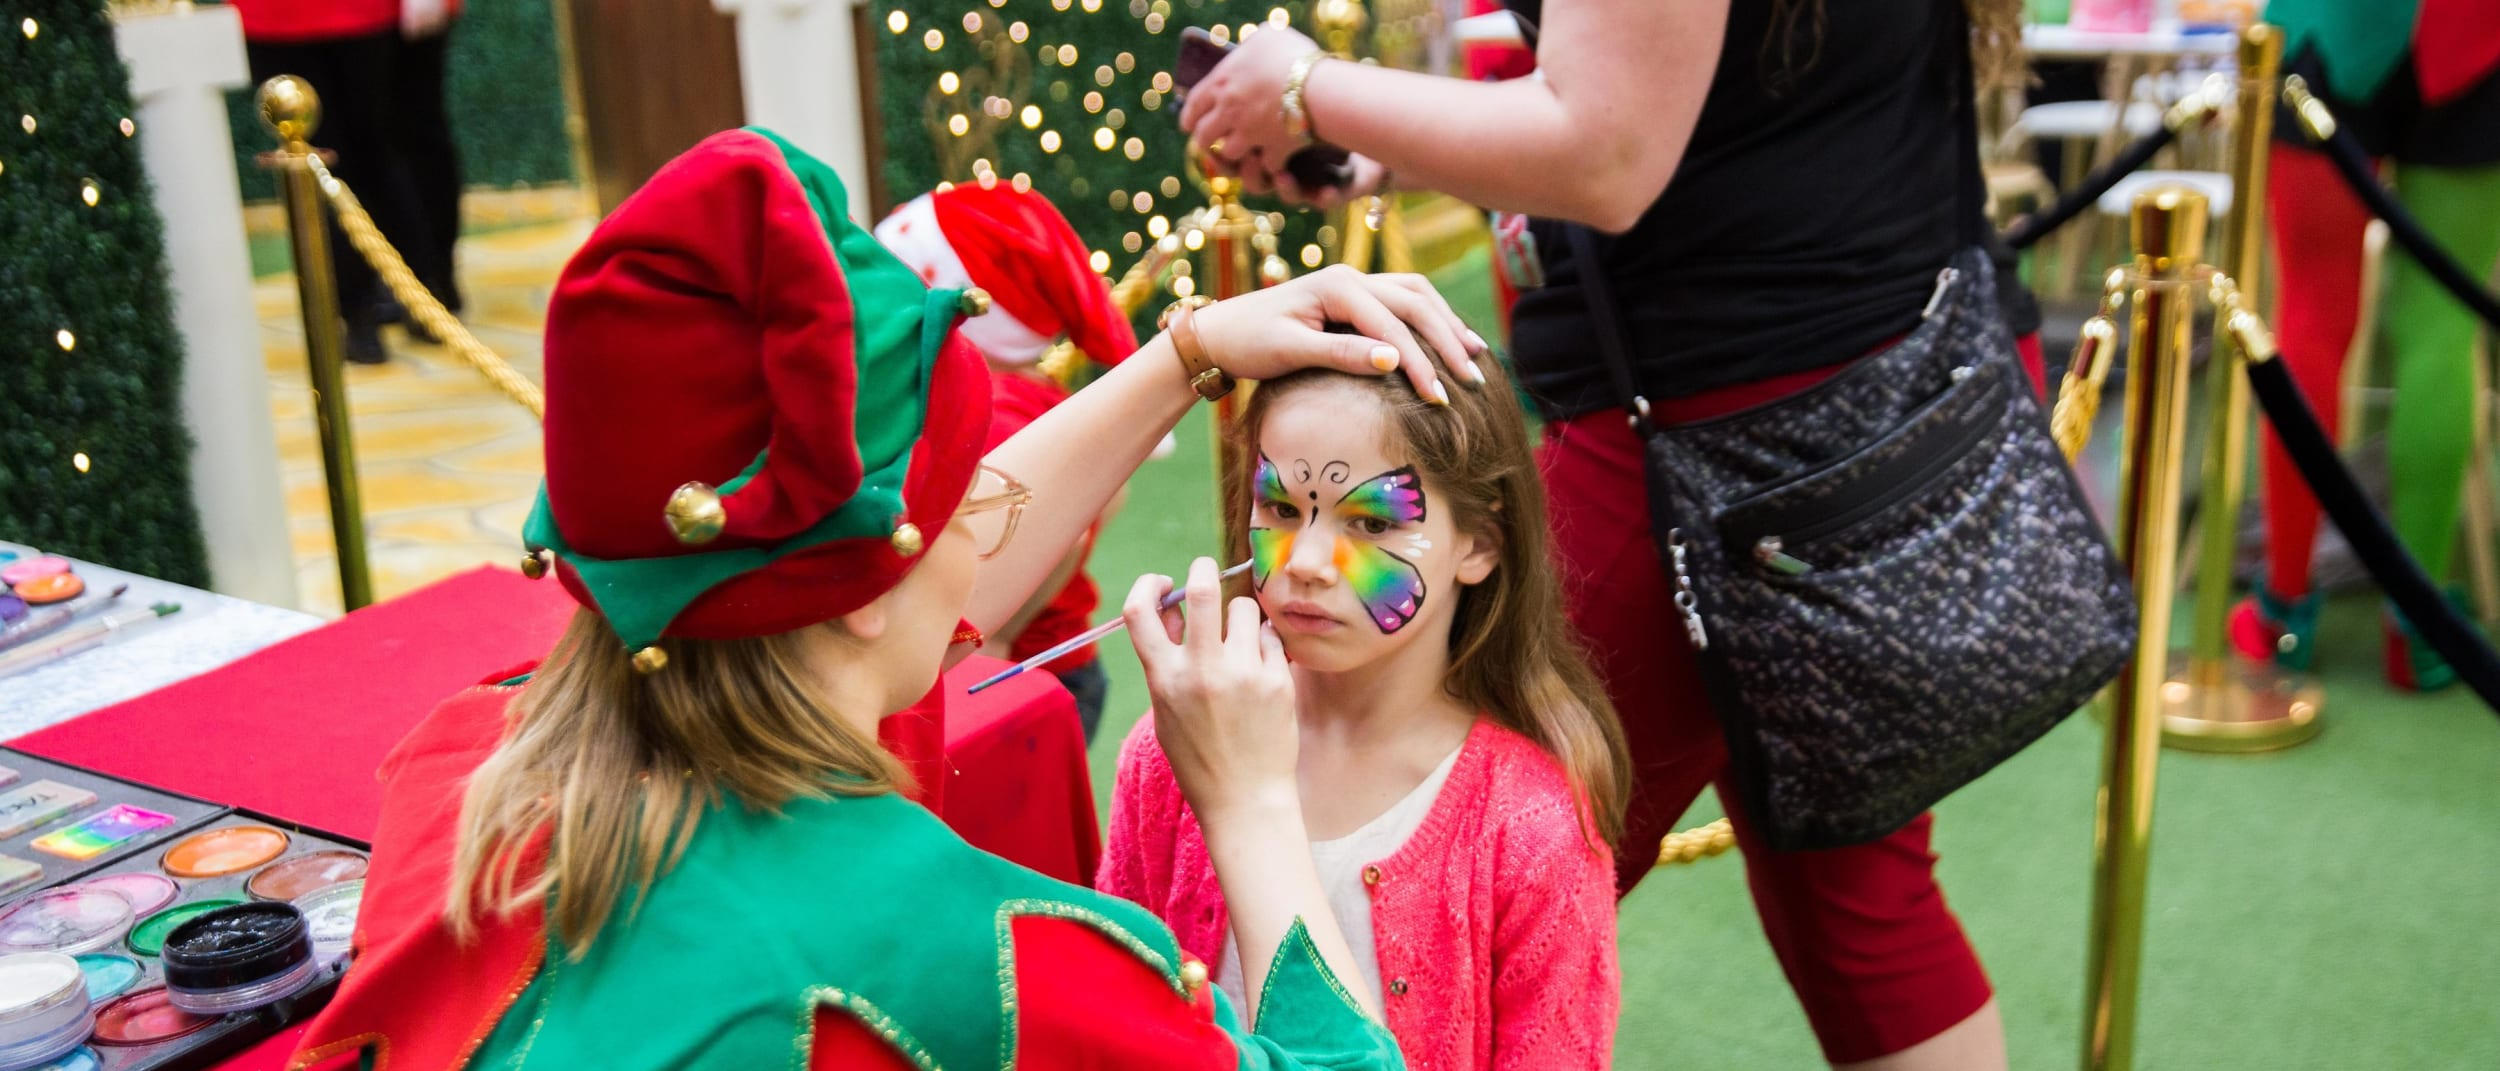 Festive face painting